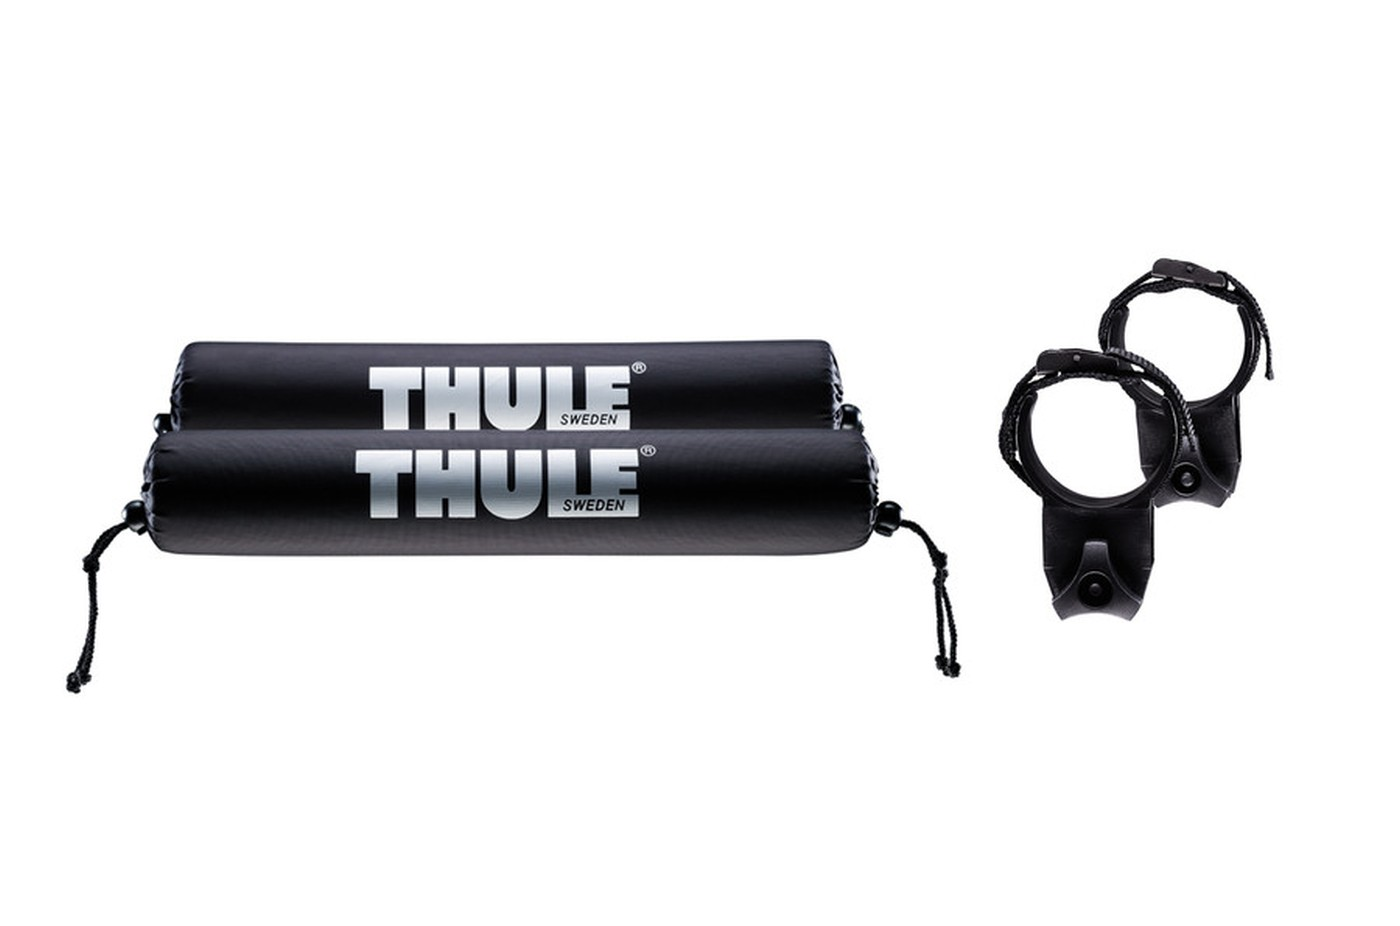 THULE Windsurfing carrier 533-30